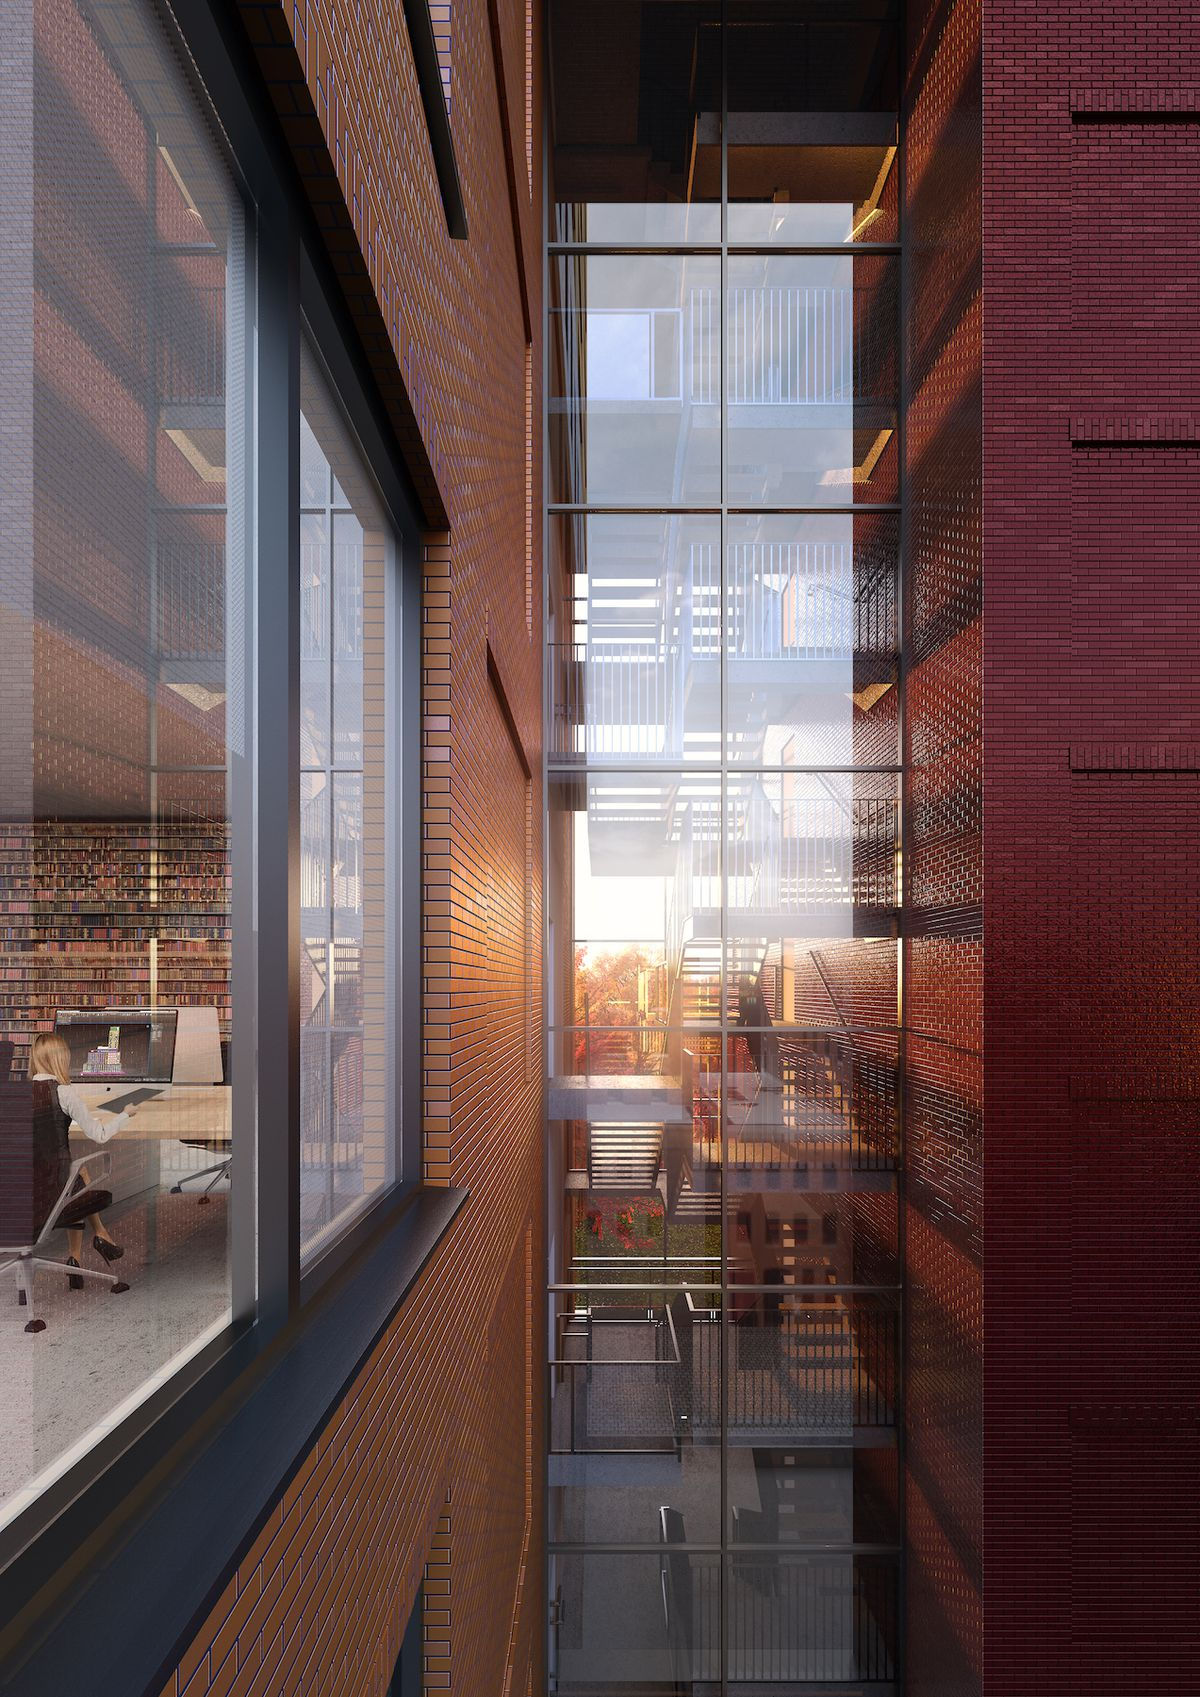 MVRDV's first major American project revealed - Curbed NY